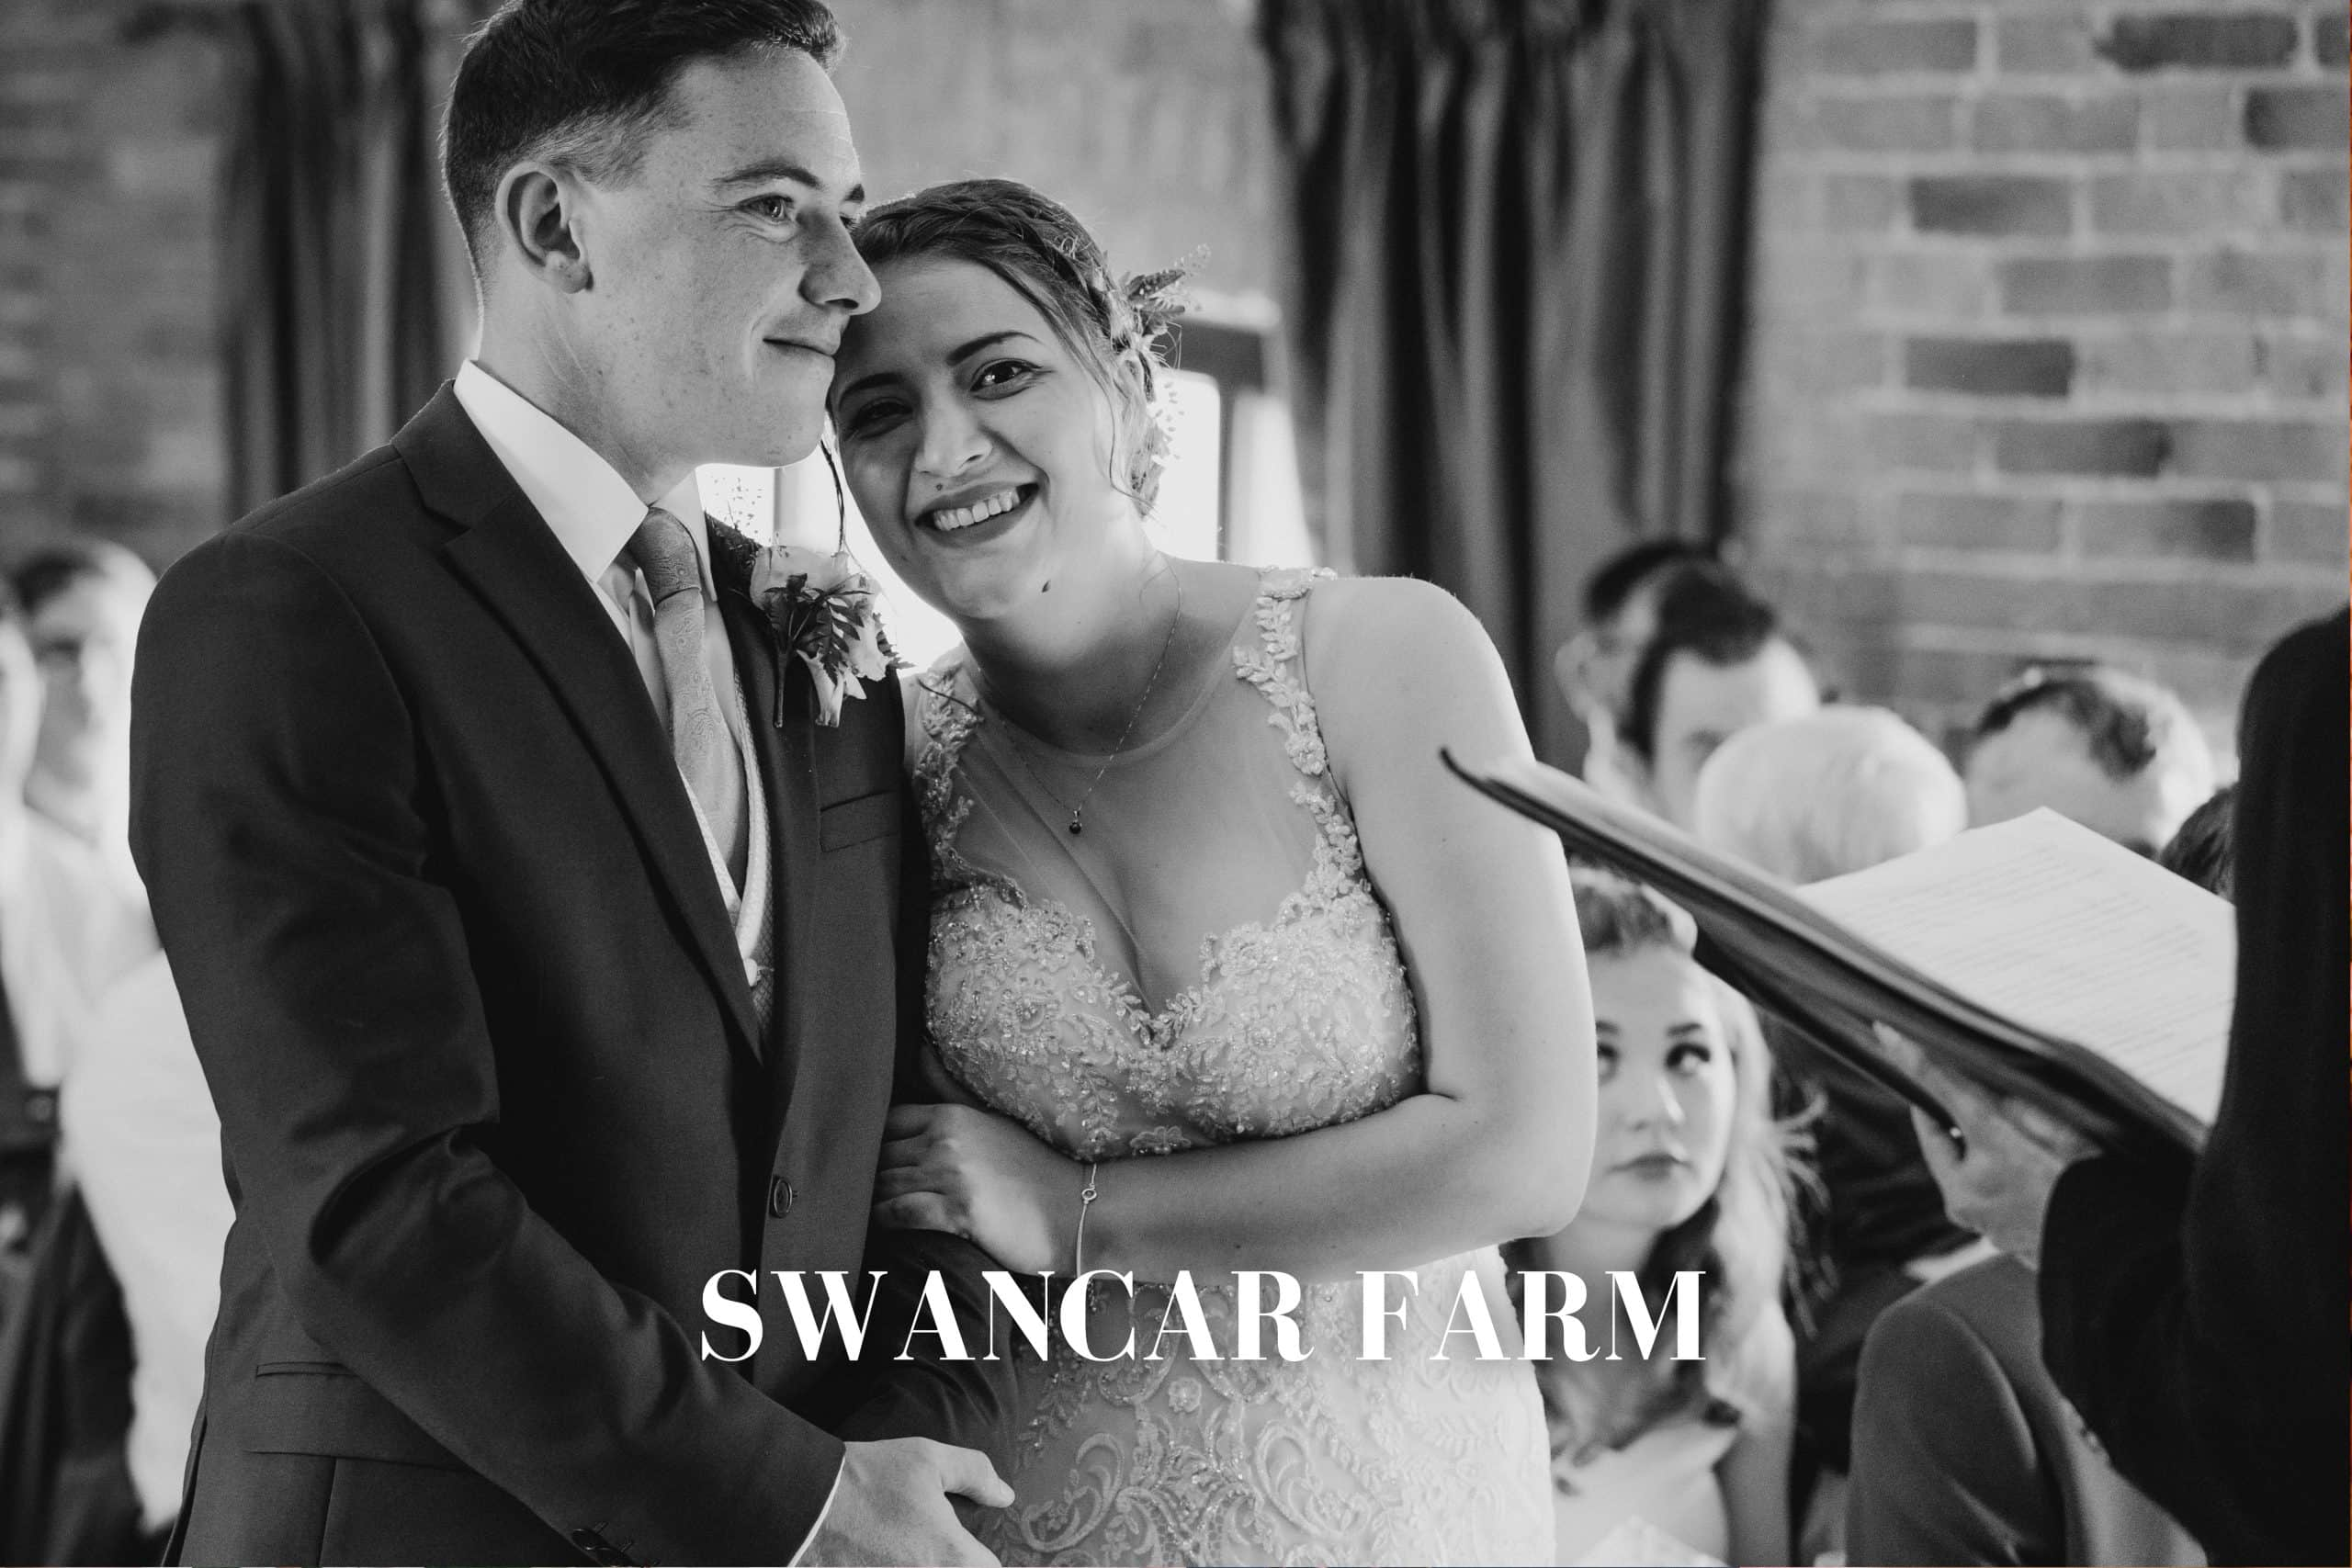 swancar farm wedding photography - bride and groom in love during the wedding ceremony